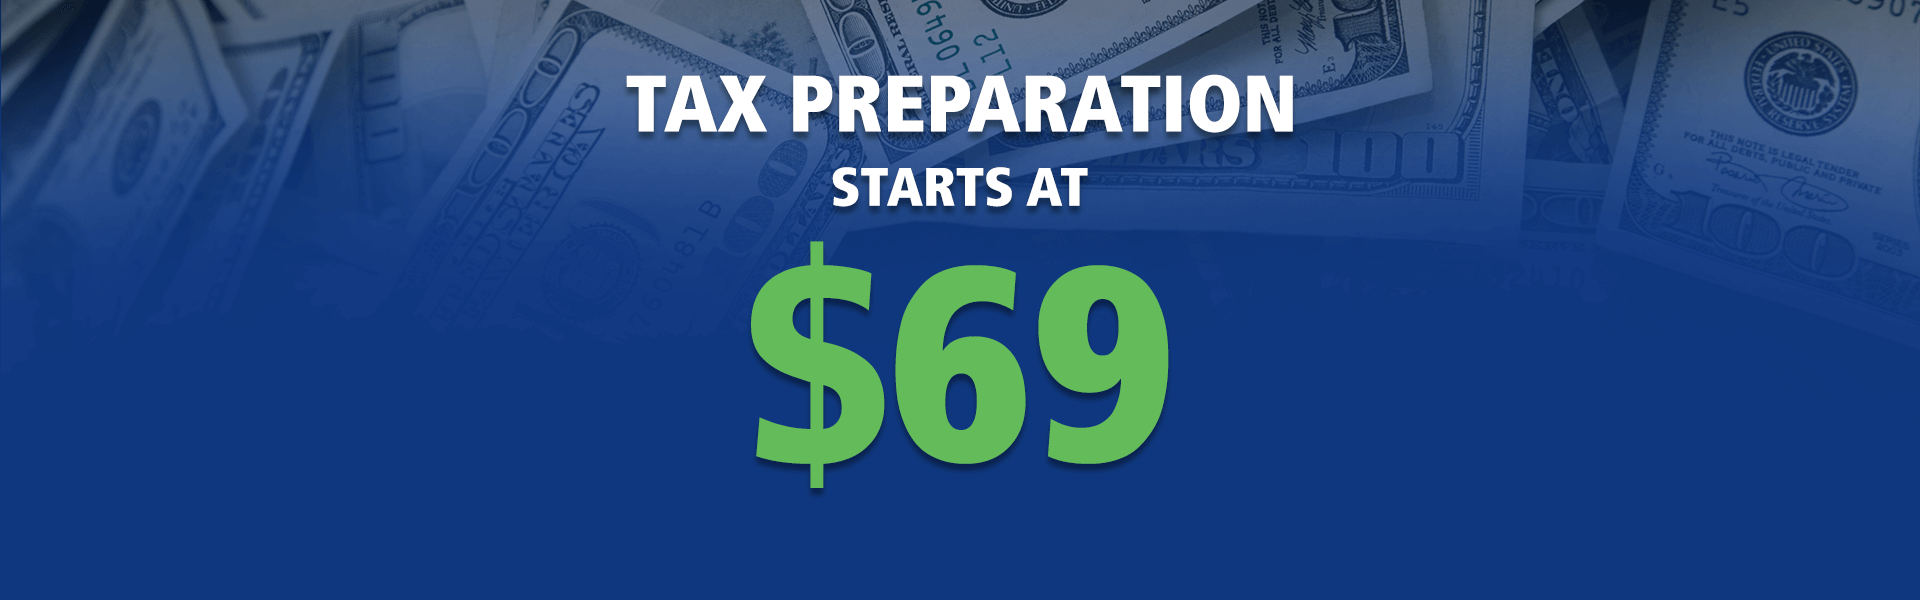 Tax Preparation starts at $69 when you file your taxes at M & M